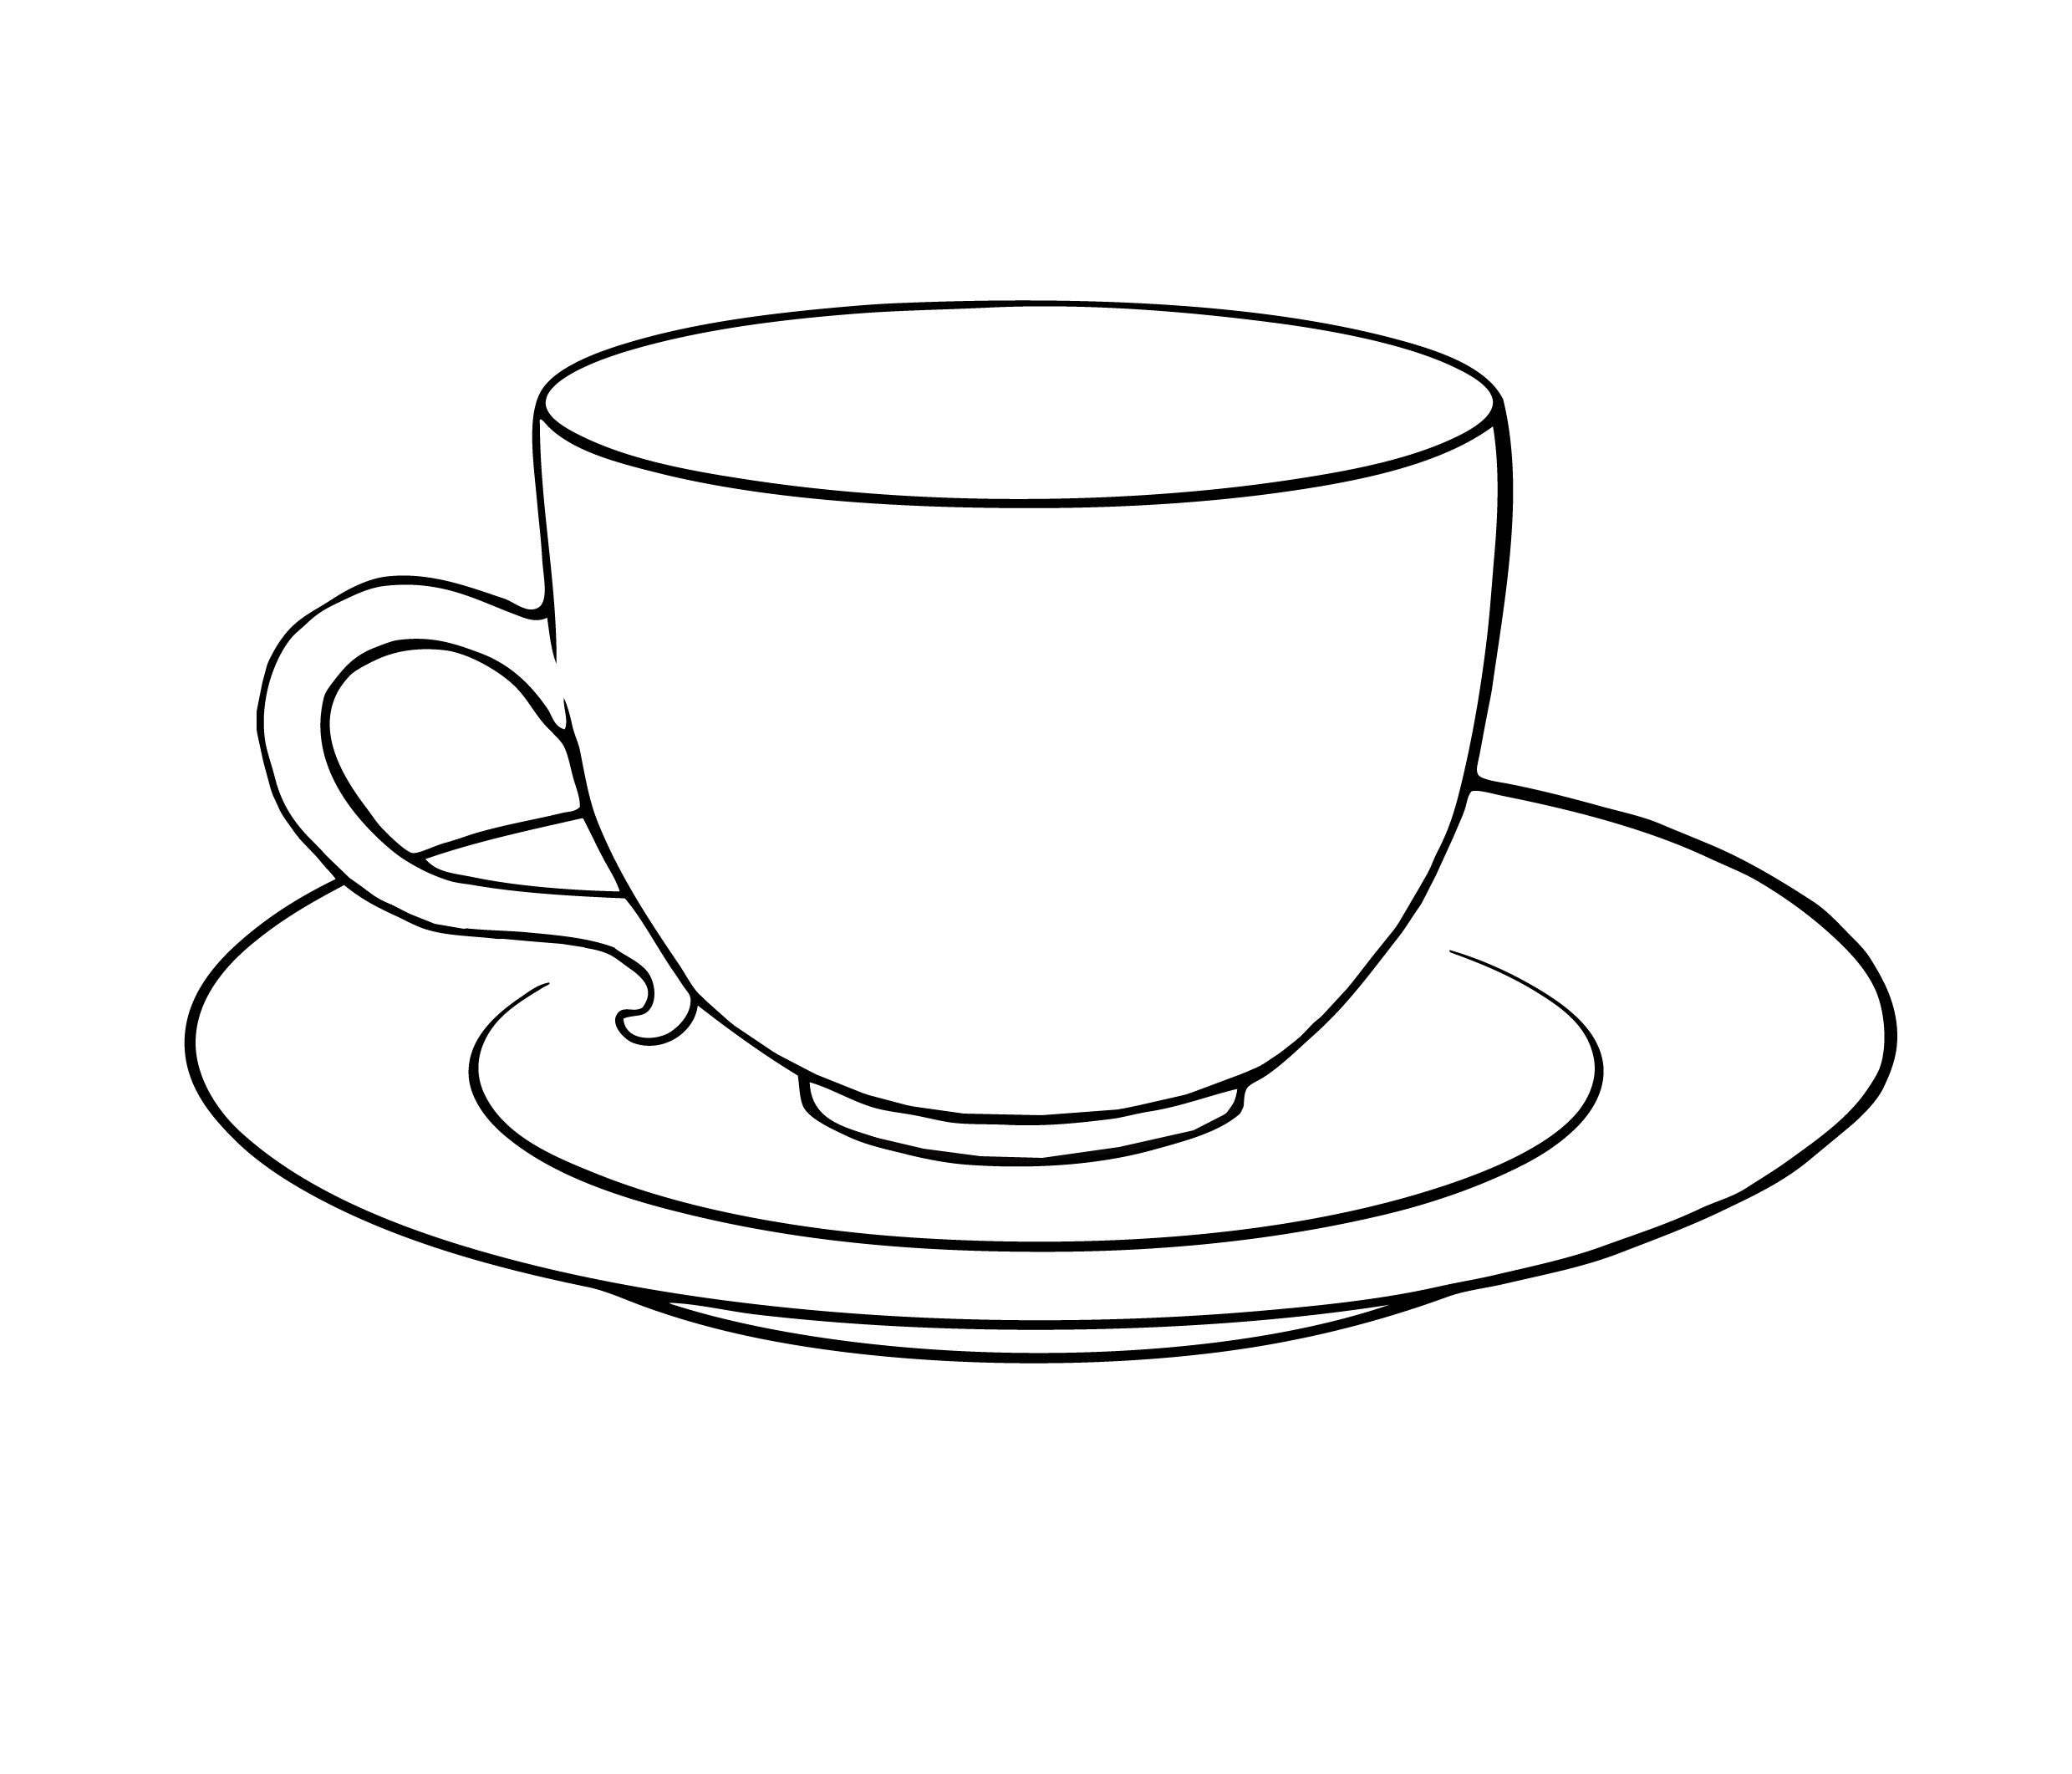 Coffee cup & saucer black & white clipart clipart transparent library Free Black And White Tea Cups, Download Free Clip Art, Free ... clipart transparent library